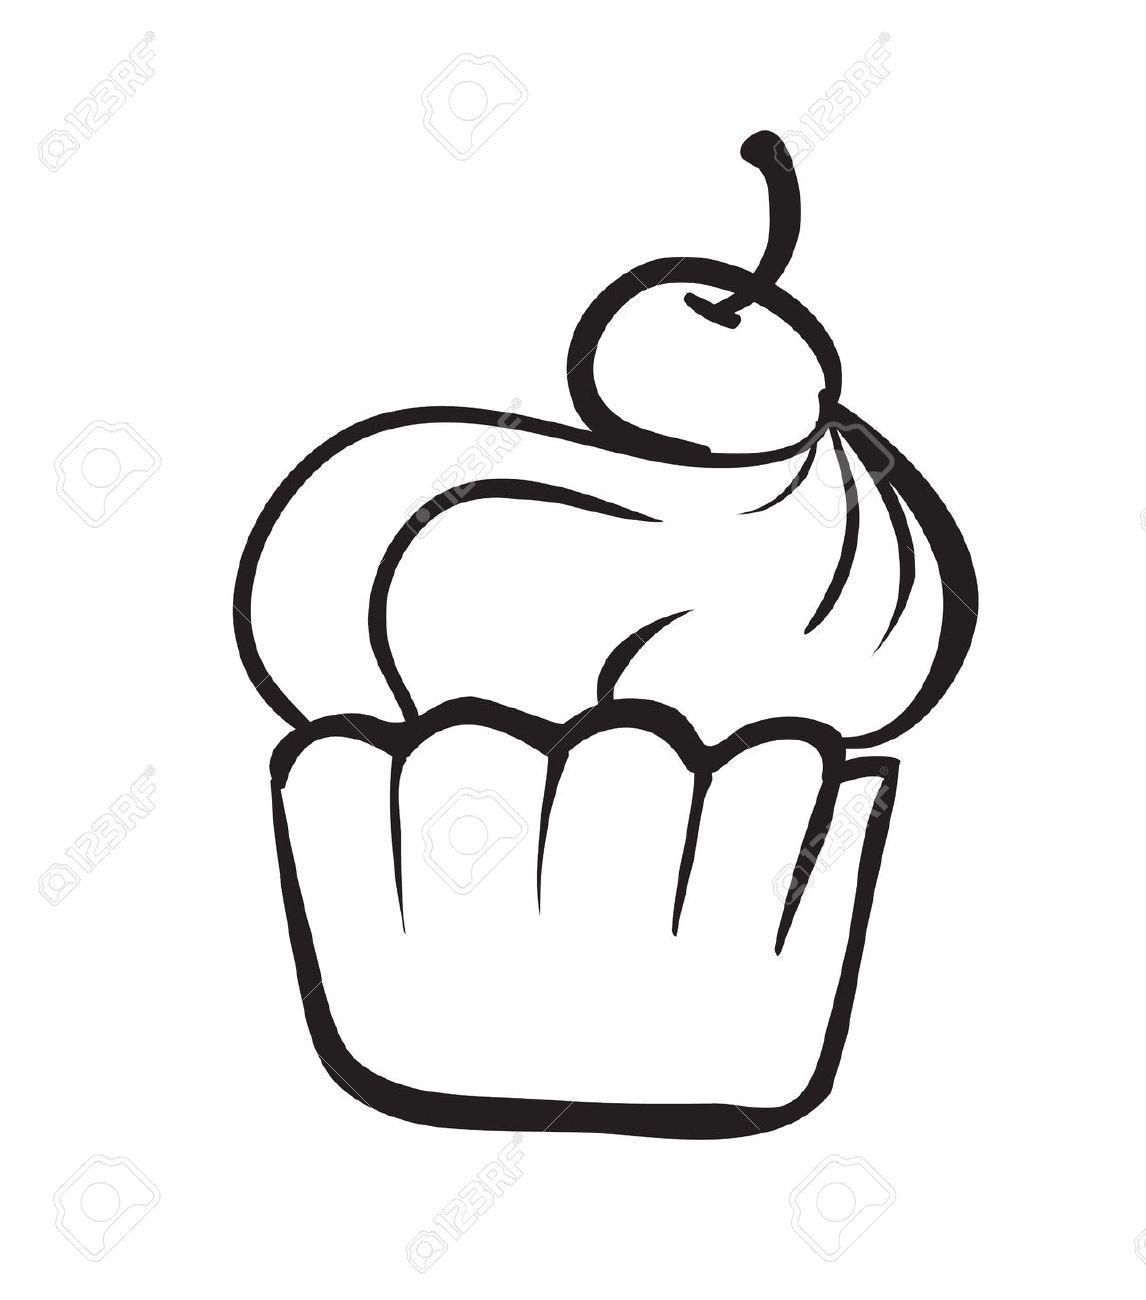 1146x1300 Slice Of Cake Clipart Black And White